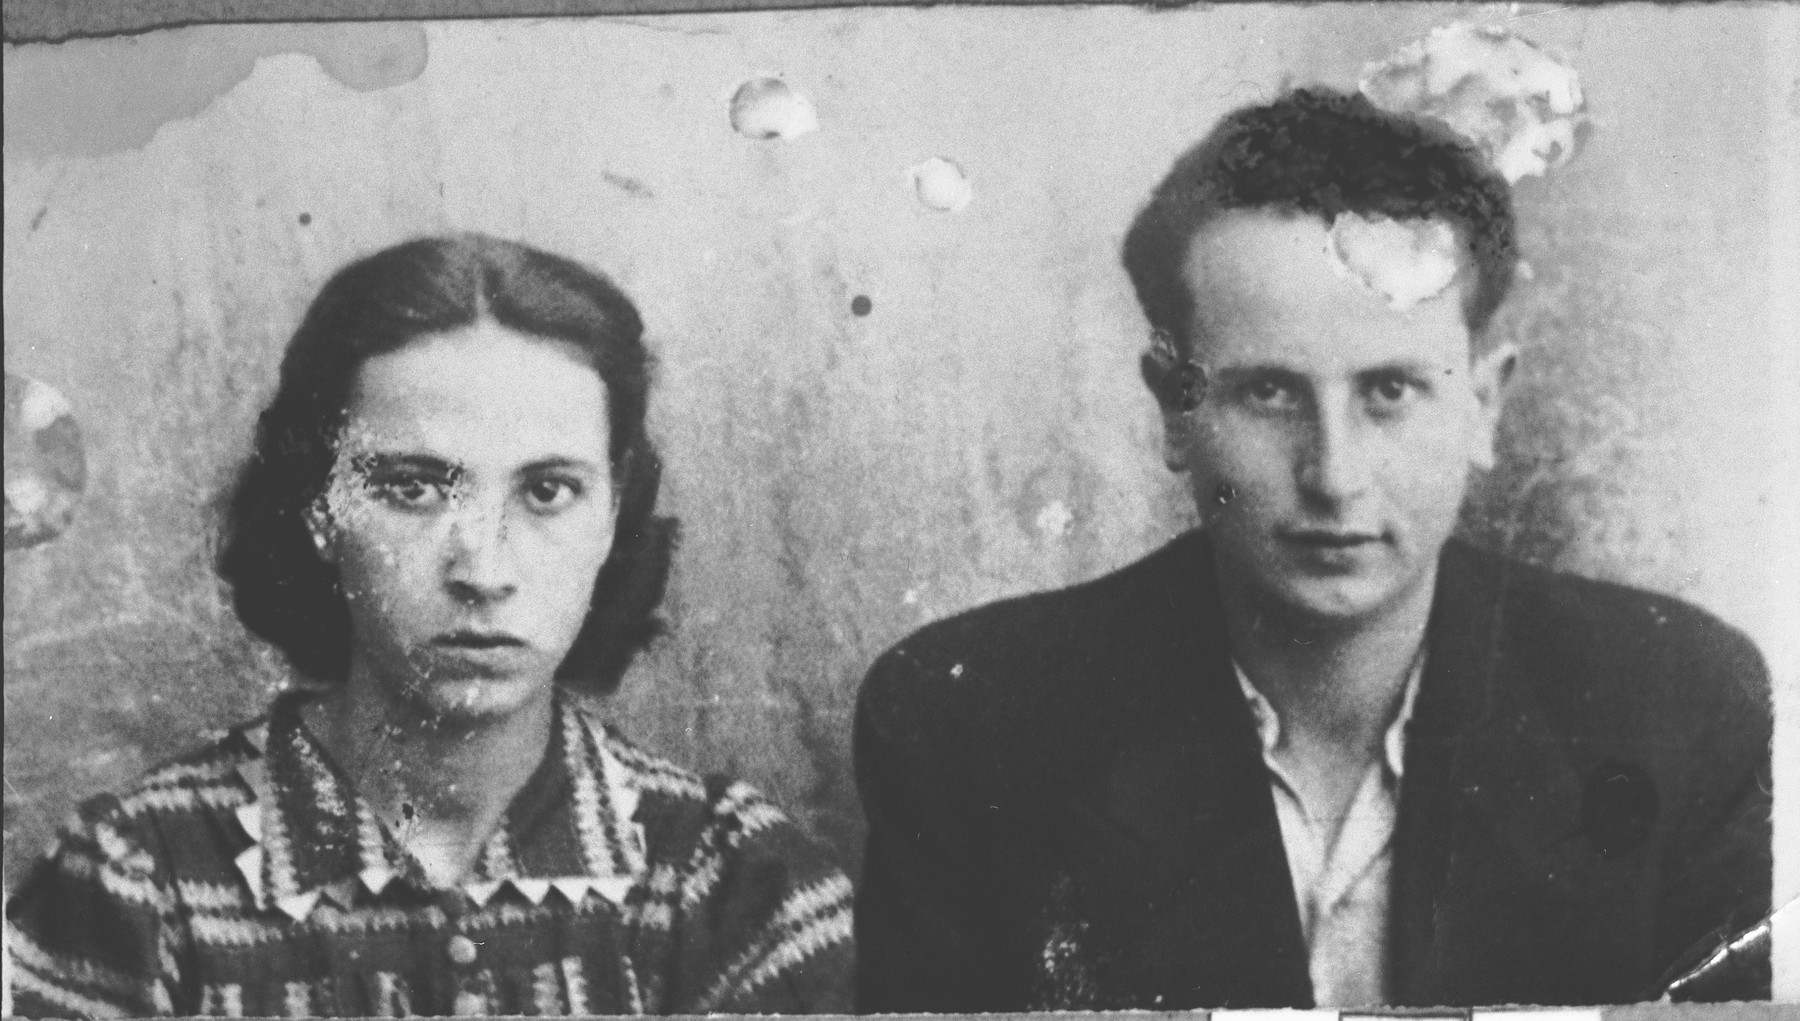 Portrait of Todoros Kamchi, son of Isak Kamchi, and Vida Kamchi, daughter of Isak Kamchi.  They were students.  They lived at Drinska 79 in Bitola.